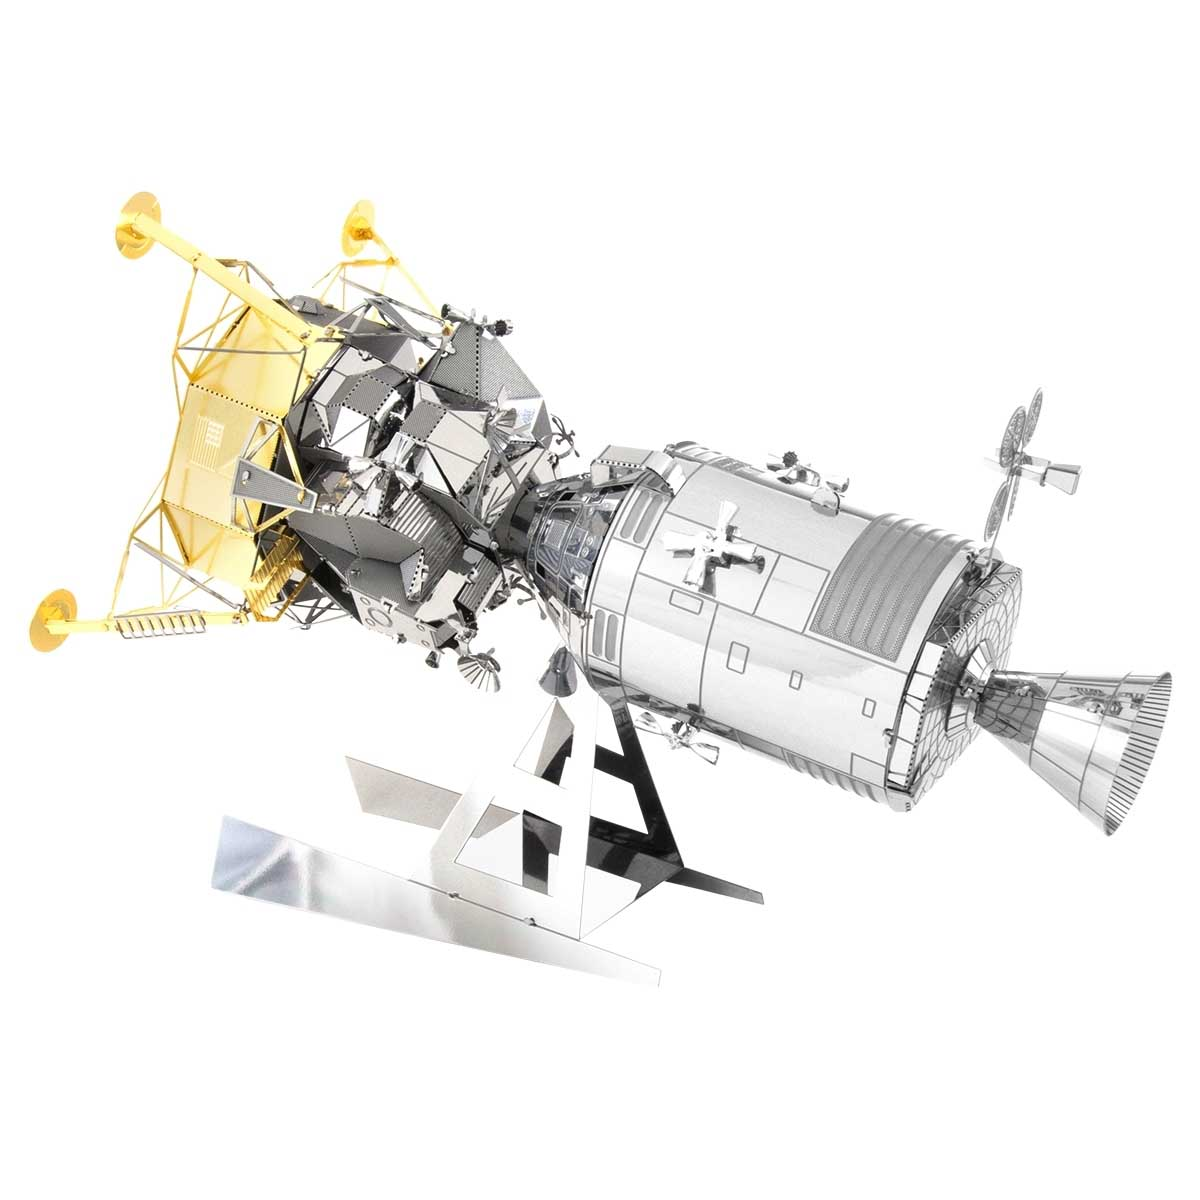 Apollo CSM with LM Space 3D Puzzle